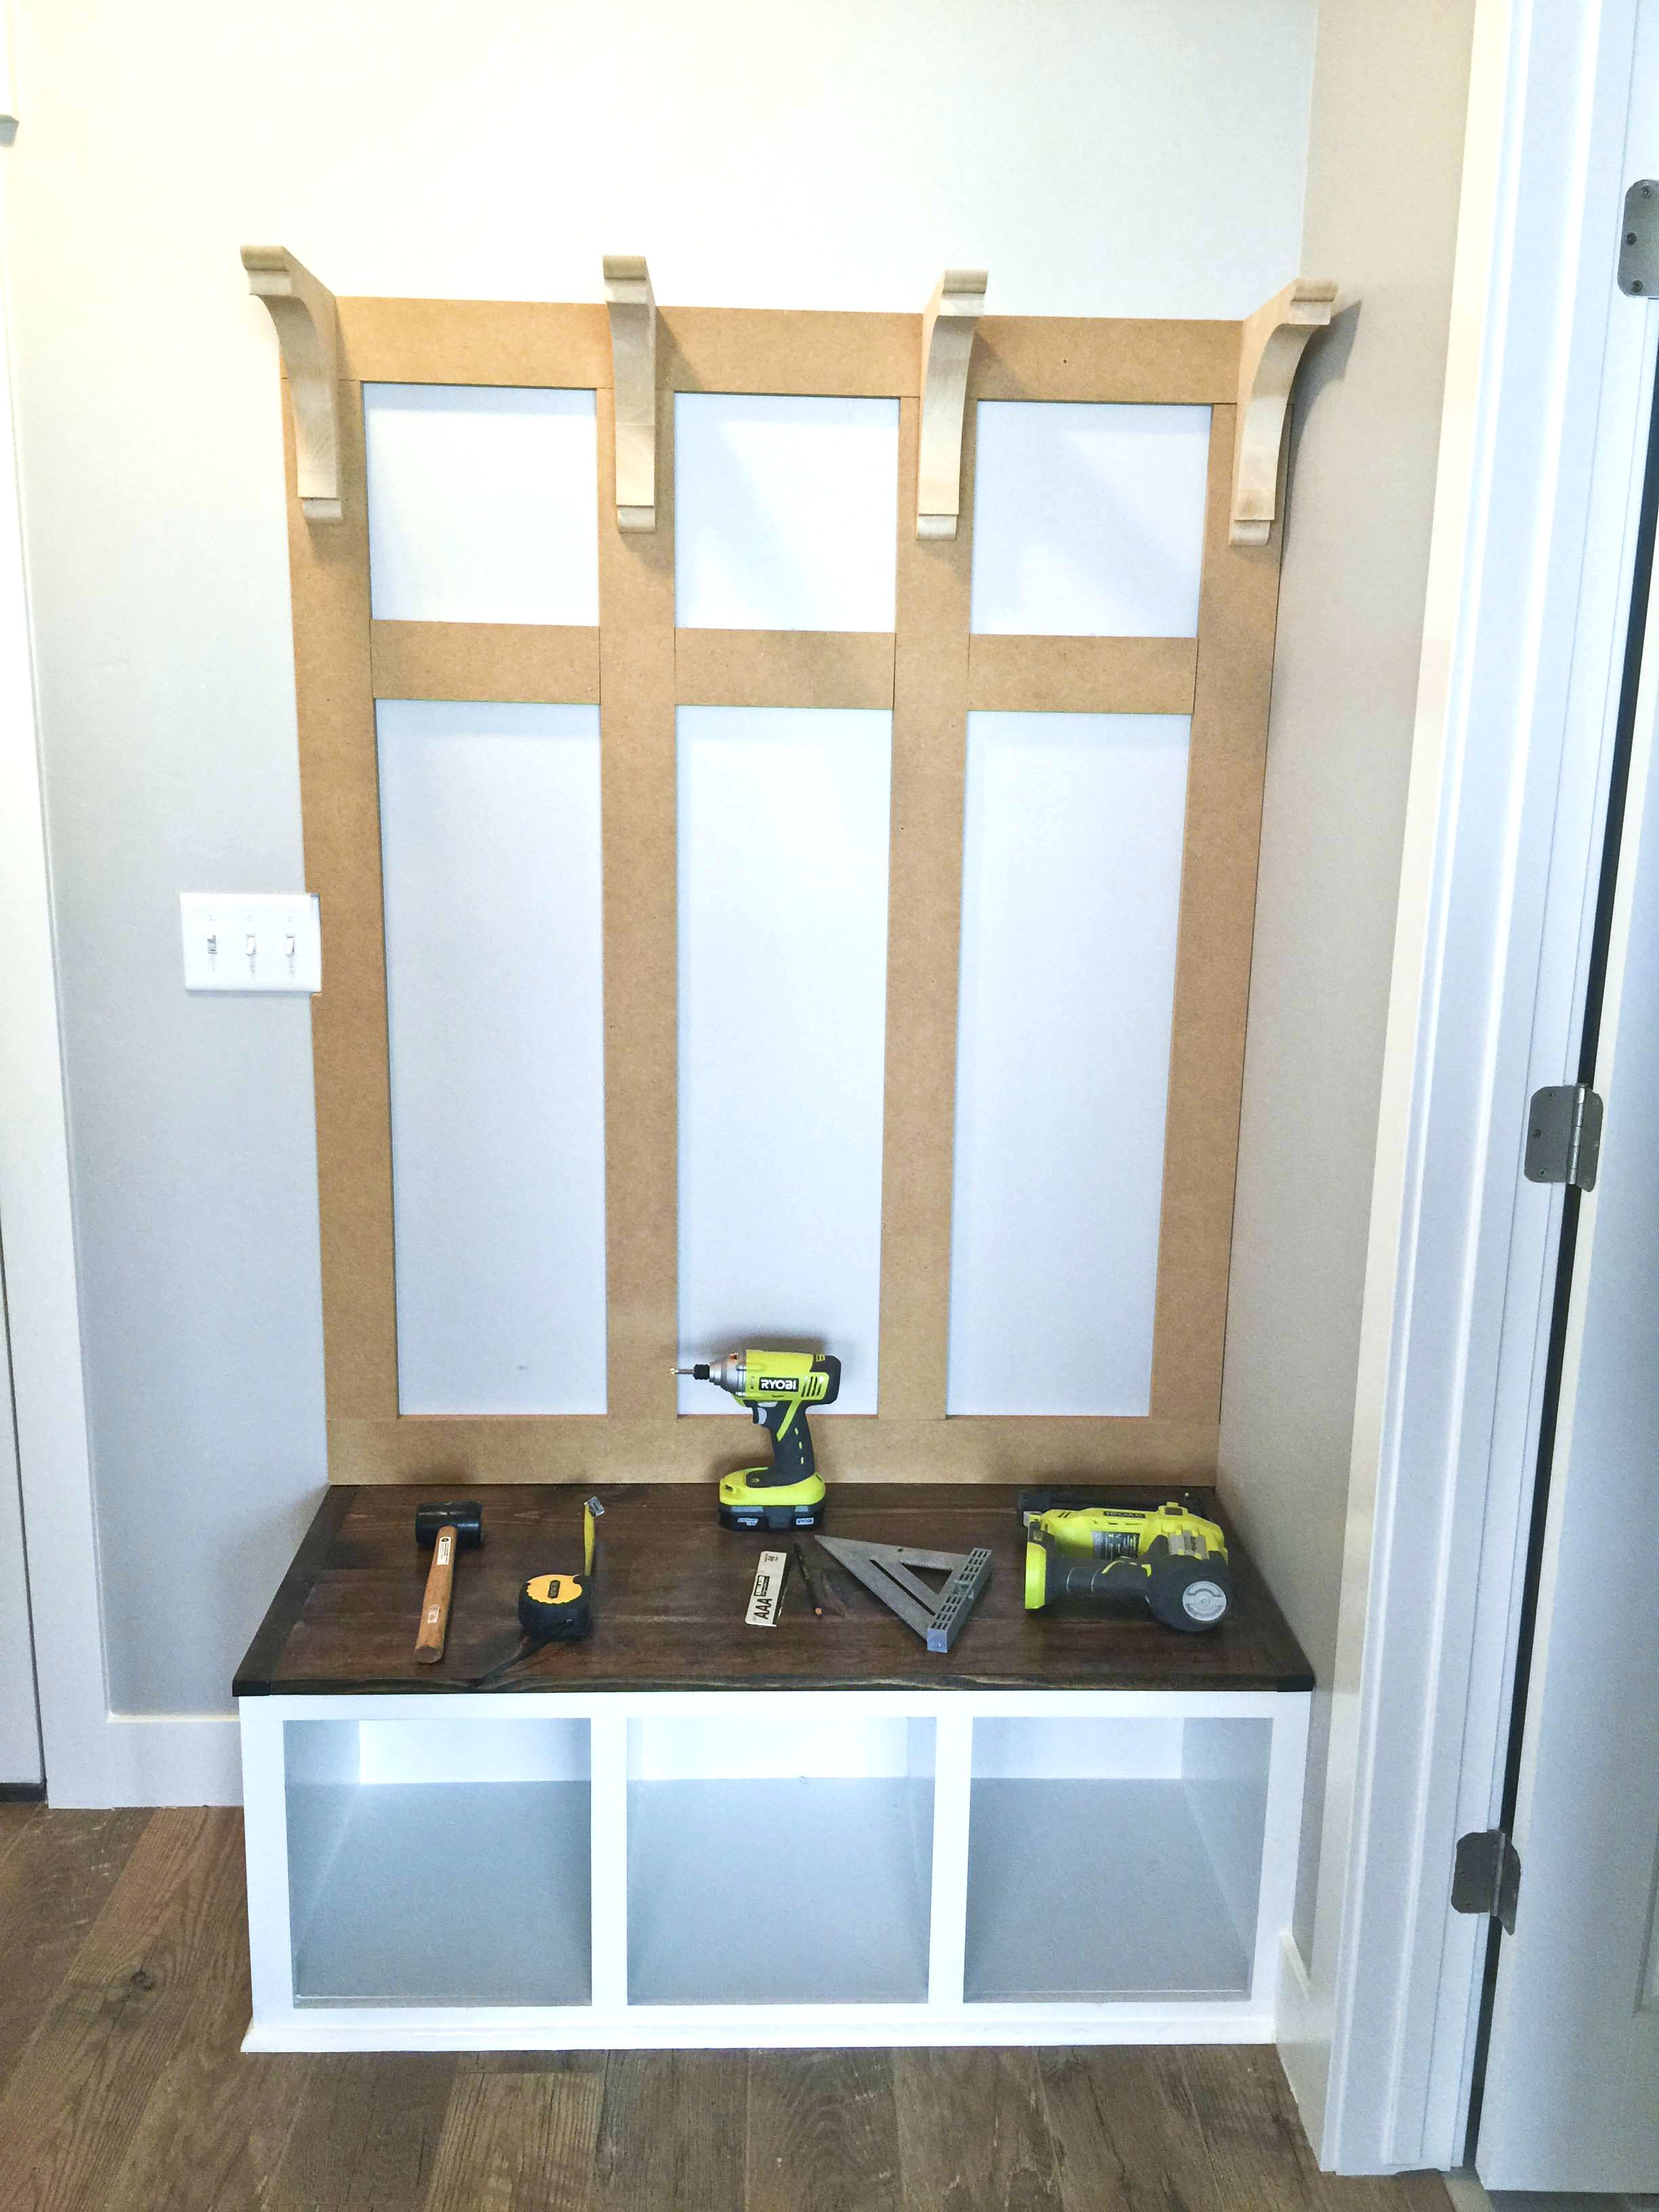 Diy mudroom bench part 2 entryway bench plans ana white entryway bench plans free mudroom bench plans diy benches mudroom bench designs